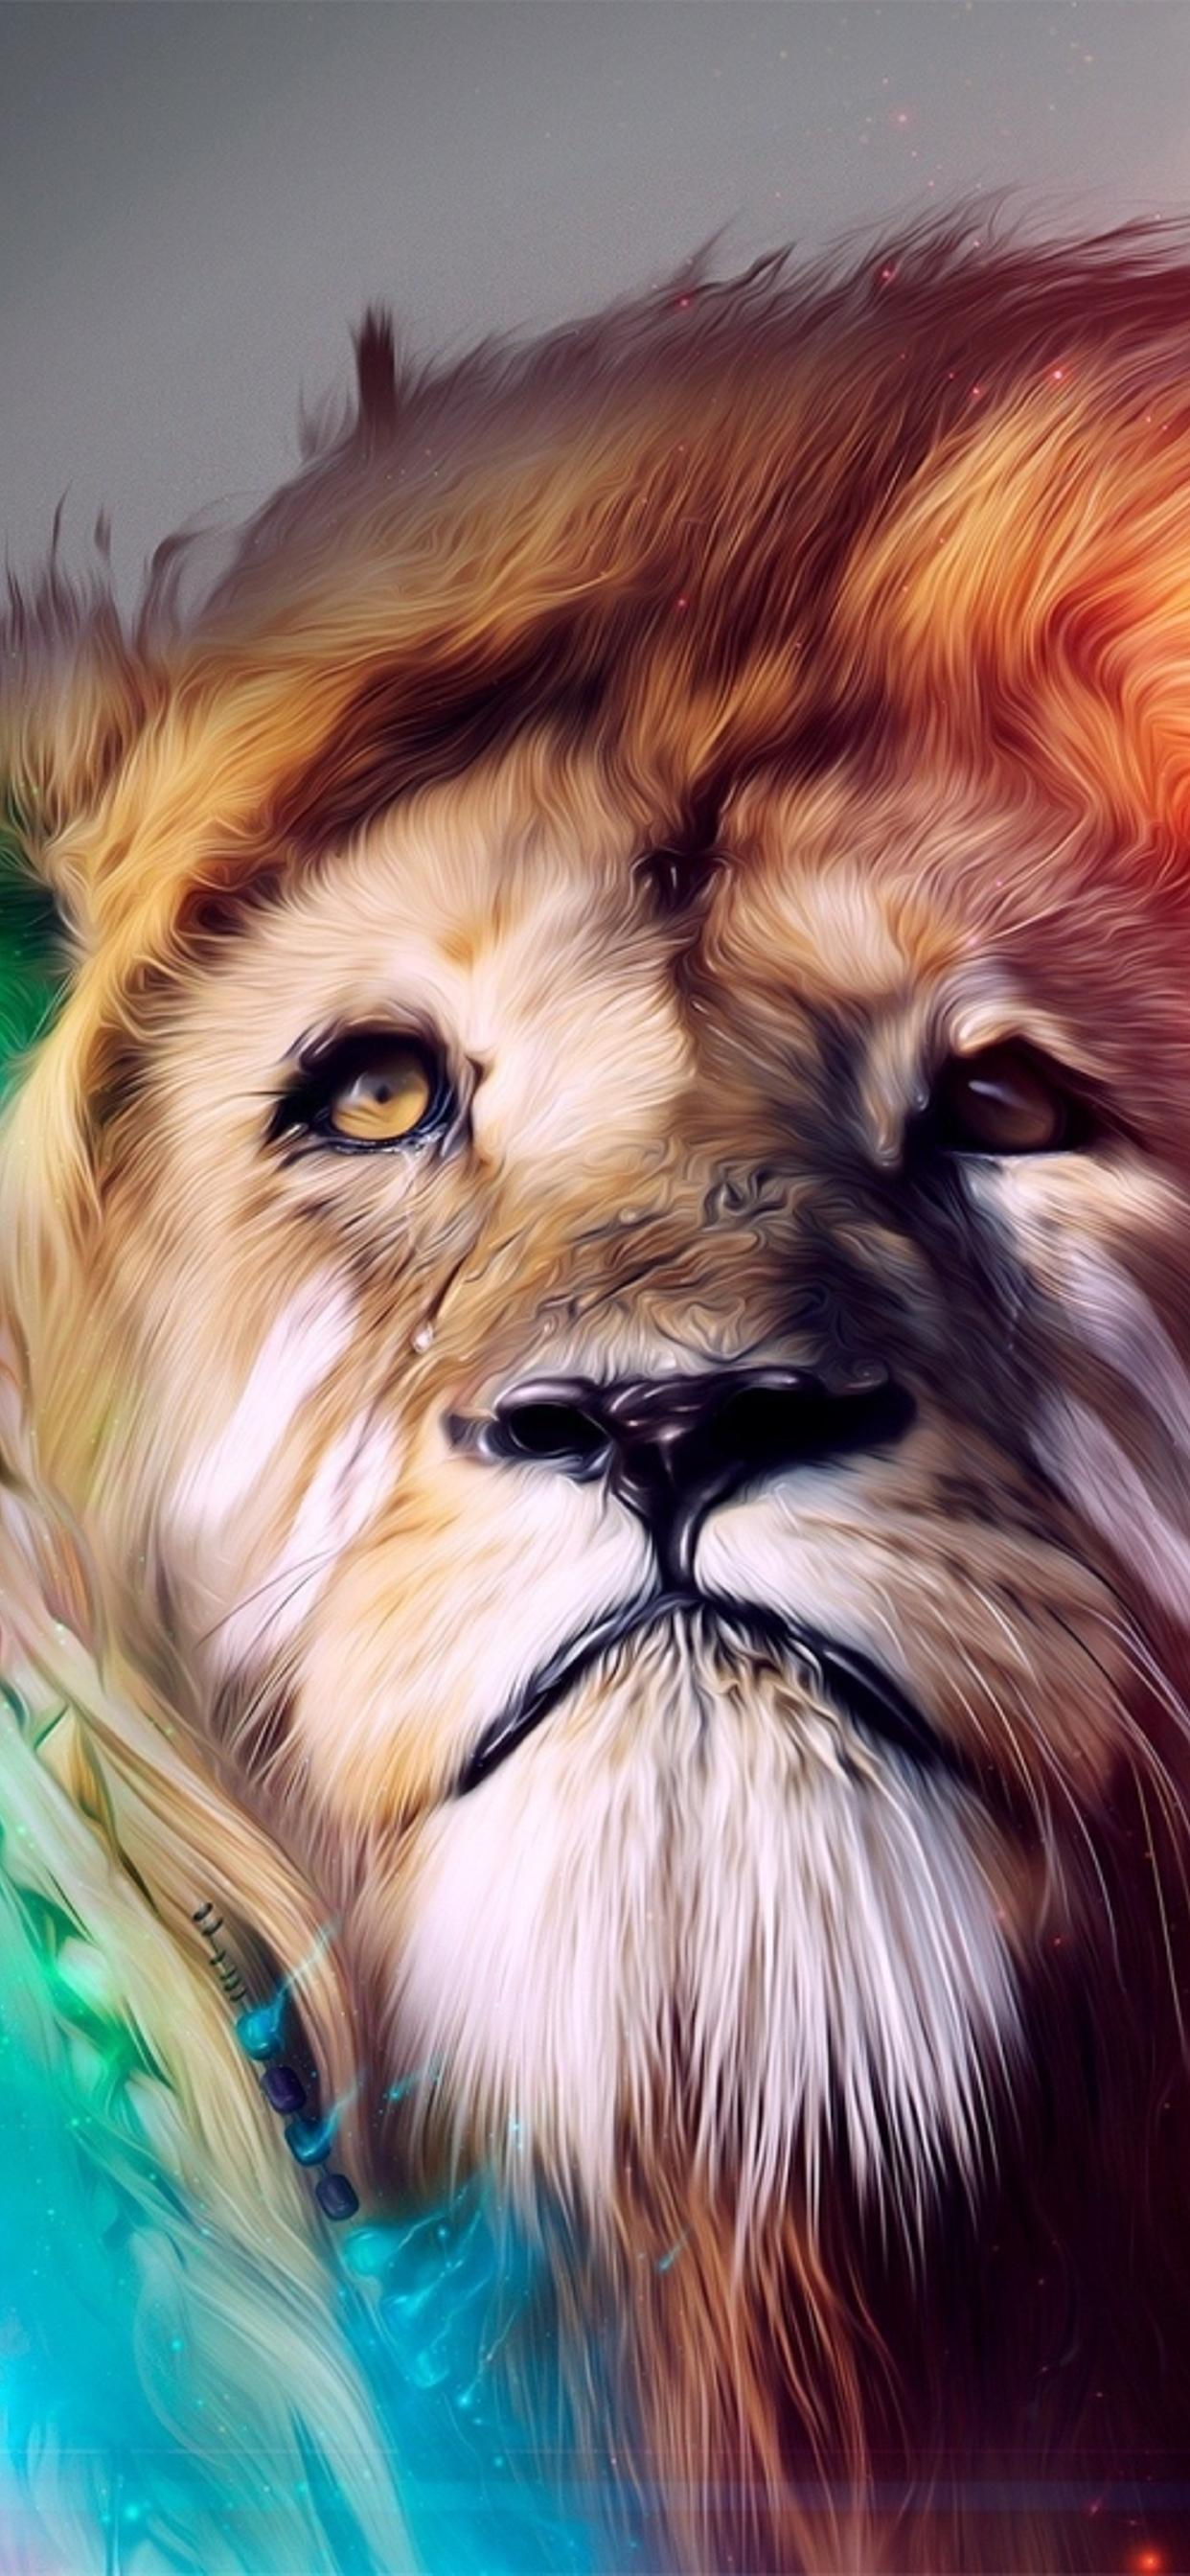 Abstract Rainbow Lion Creative Wallpaper